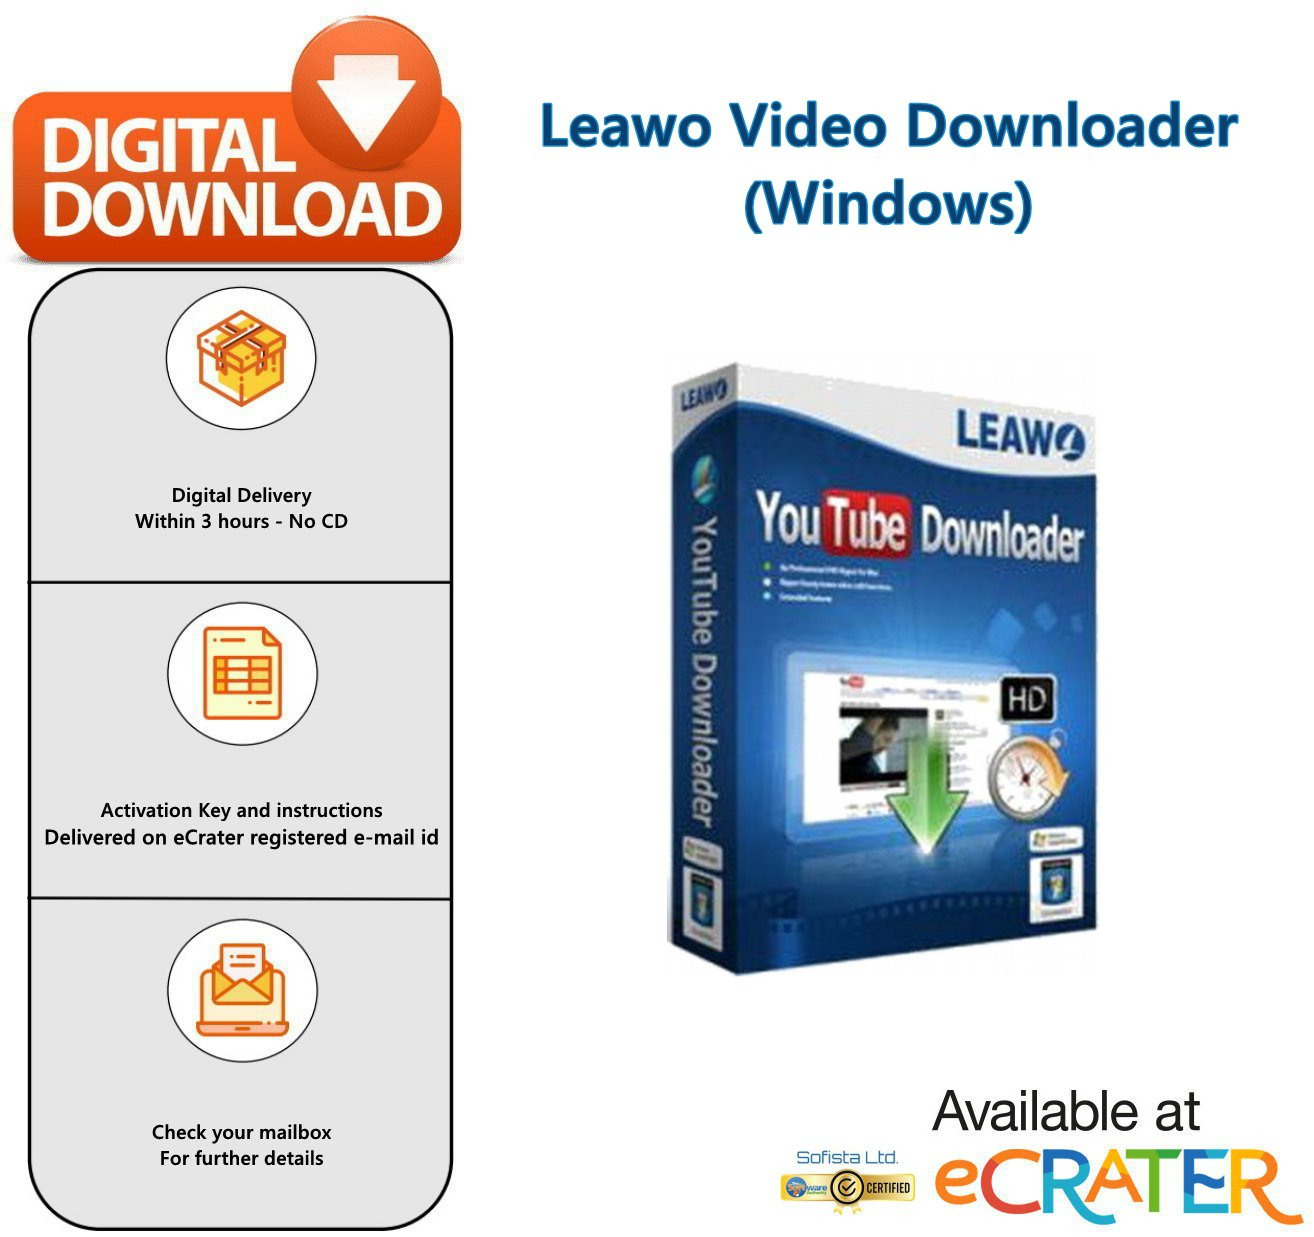 Leawo Video Downloader: Download Videos from Vimeo, Hulu, Facebook, YouTube, iFilm, VEVO & More [PC]